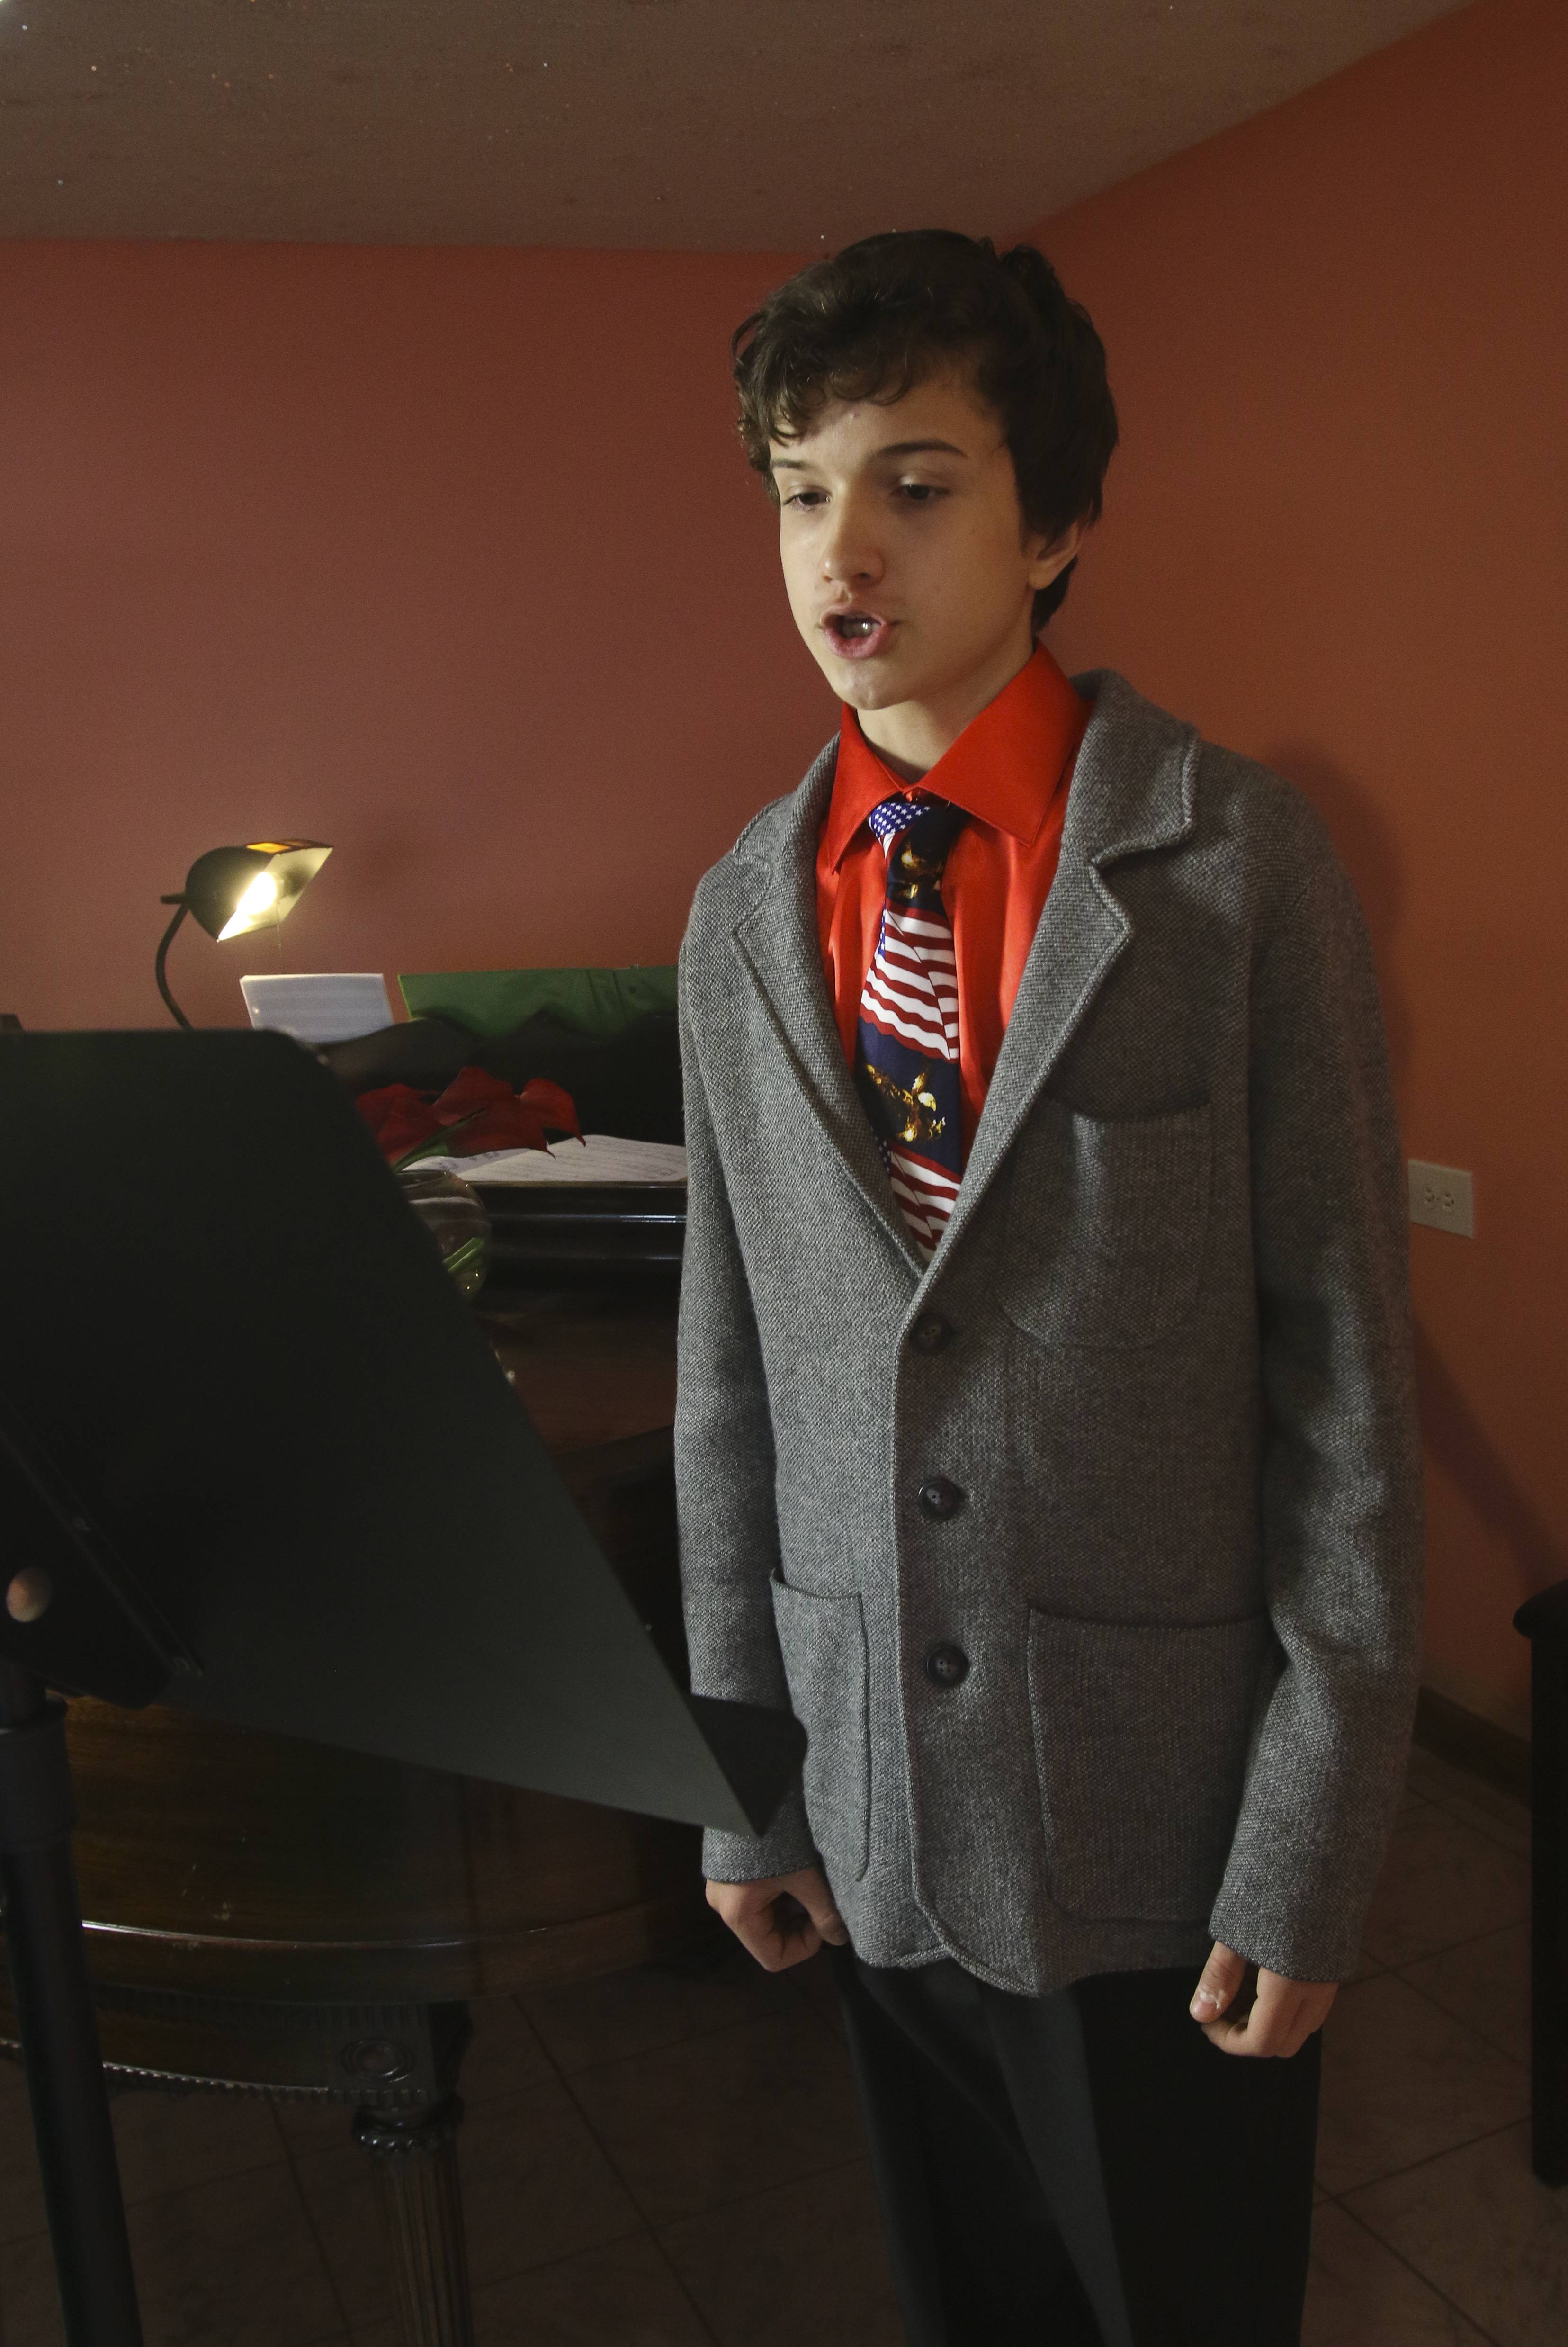 Sheridan Archbold, 14, practices singing opera every day at his home in Yorkville. He hopes to become a professional opera singer, but admits his talents may also be suited to classical crossover.